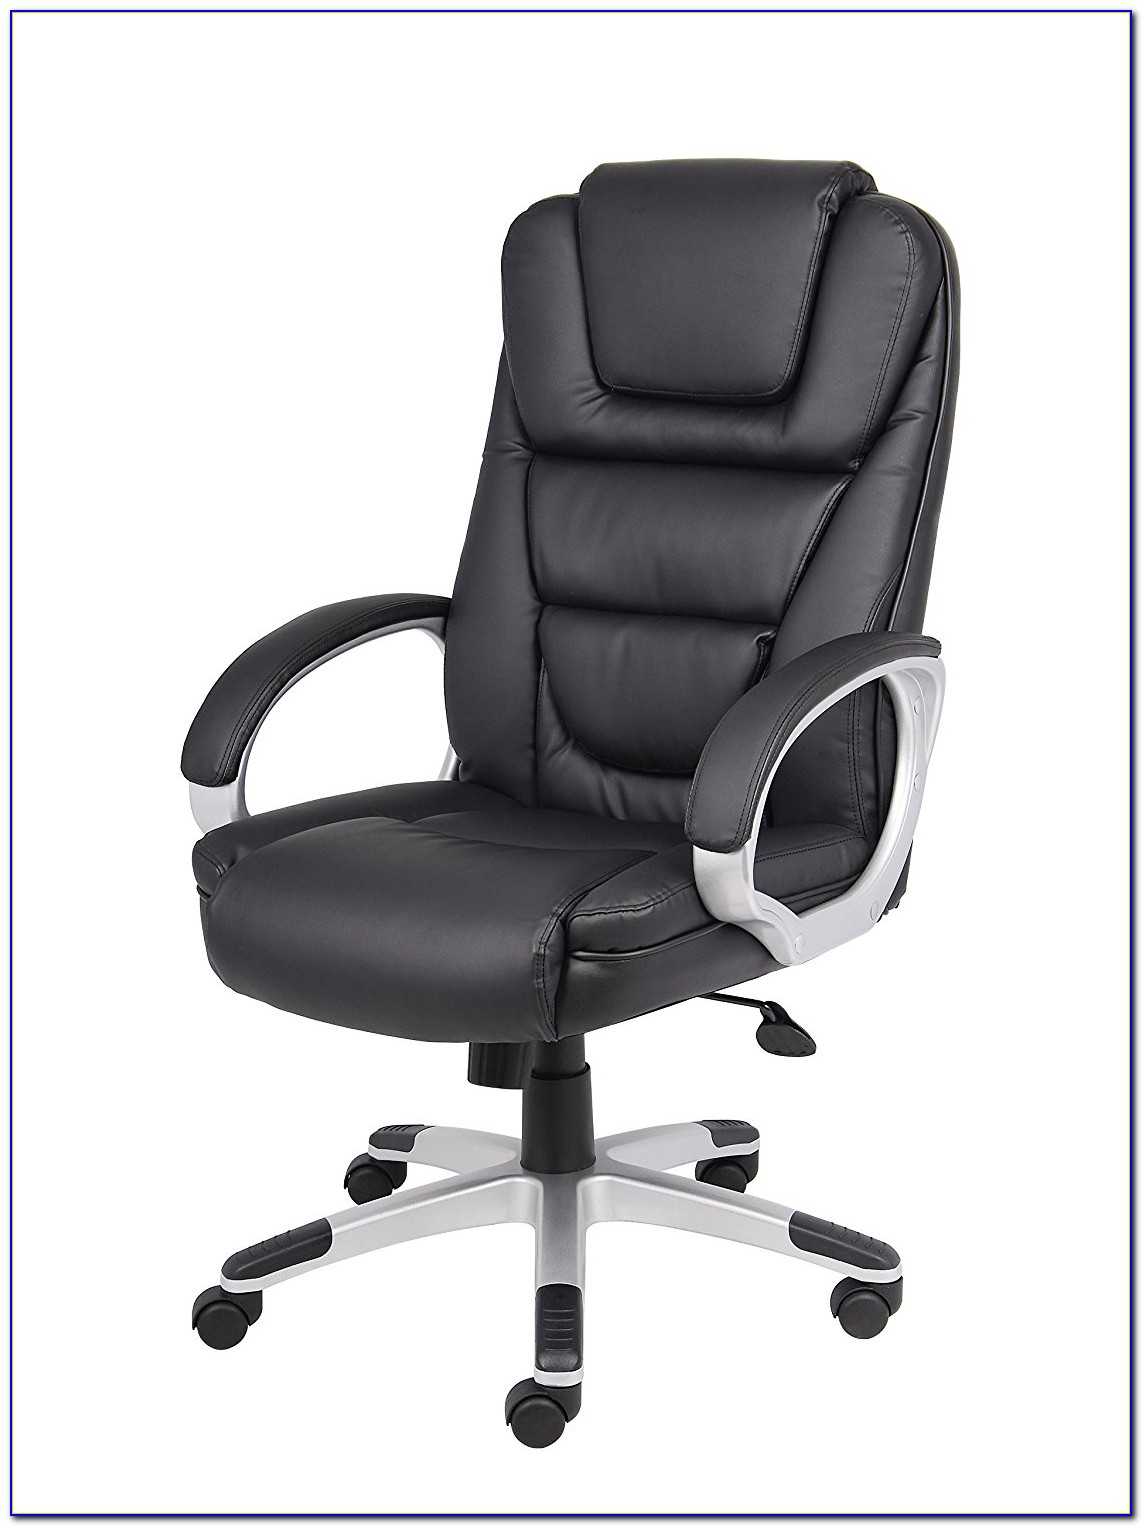 Best Desk Chair For Lower Back Pain Best Office Chair For Back Pain Uk Desk Home Design